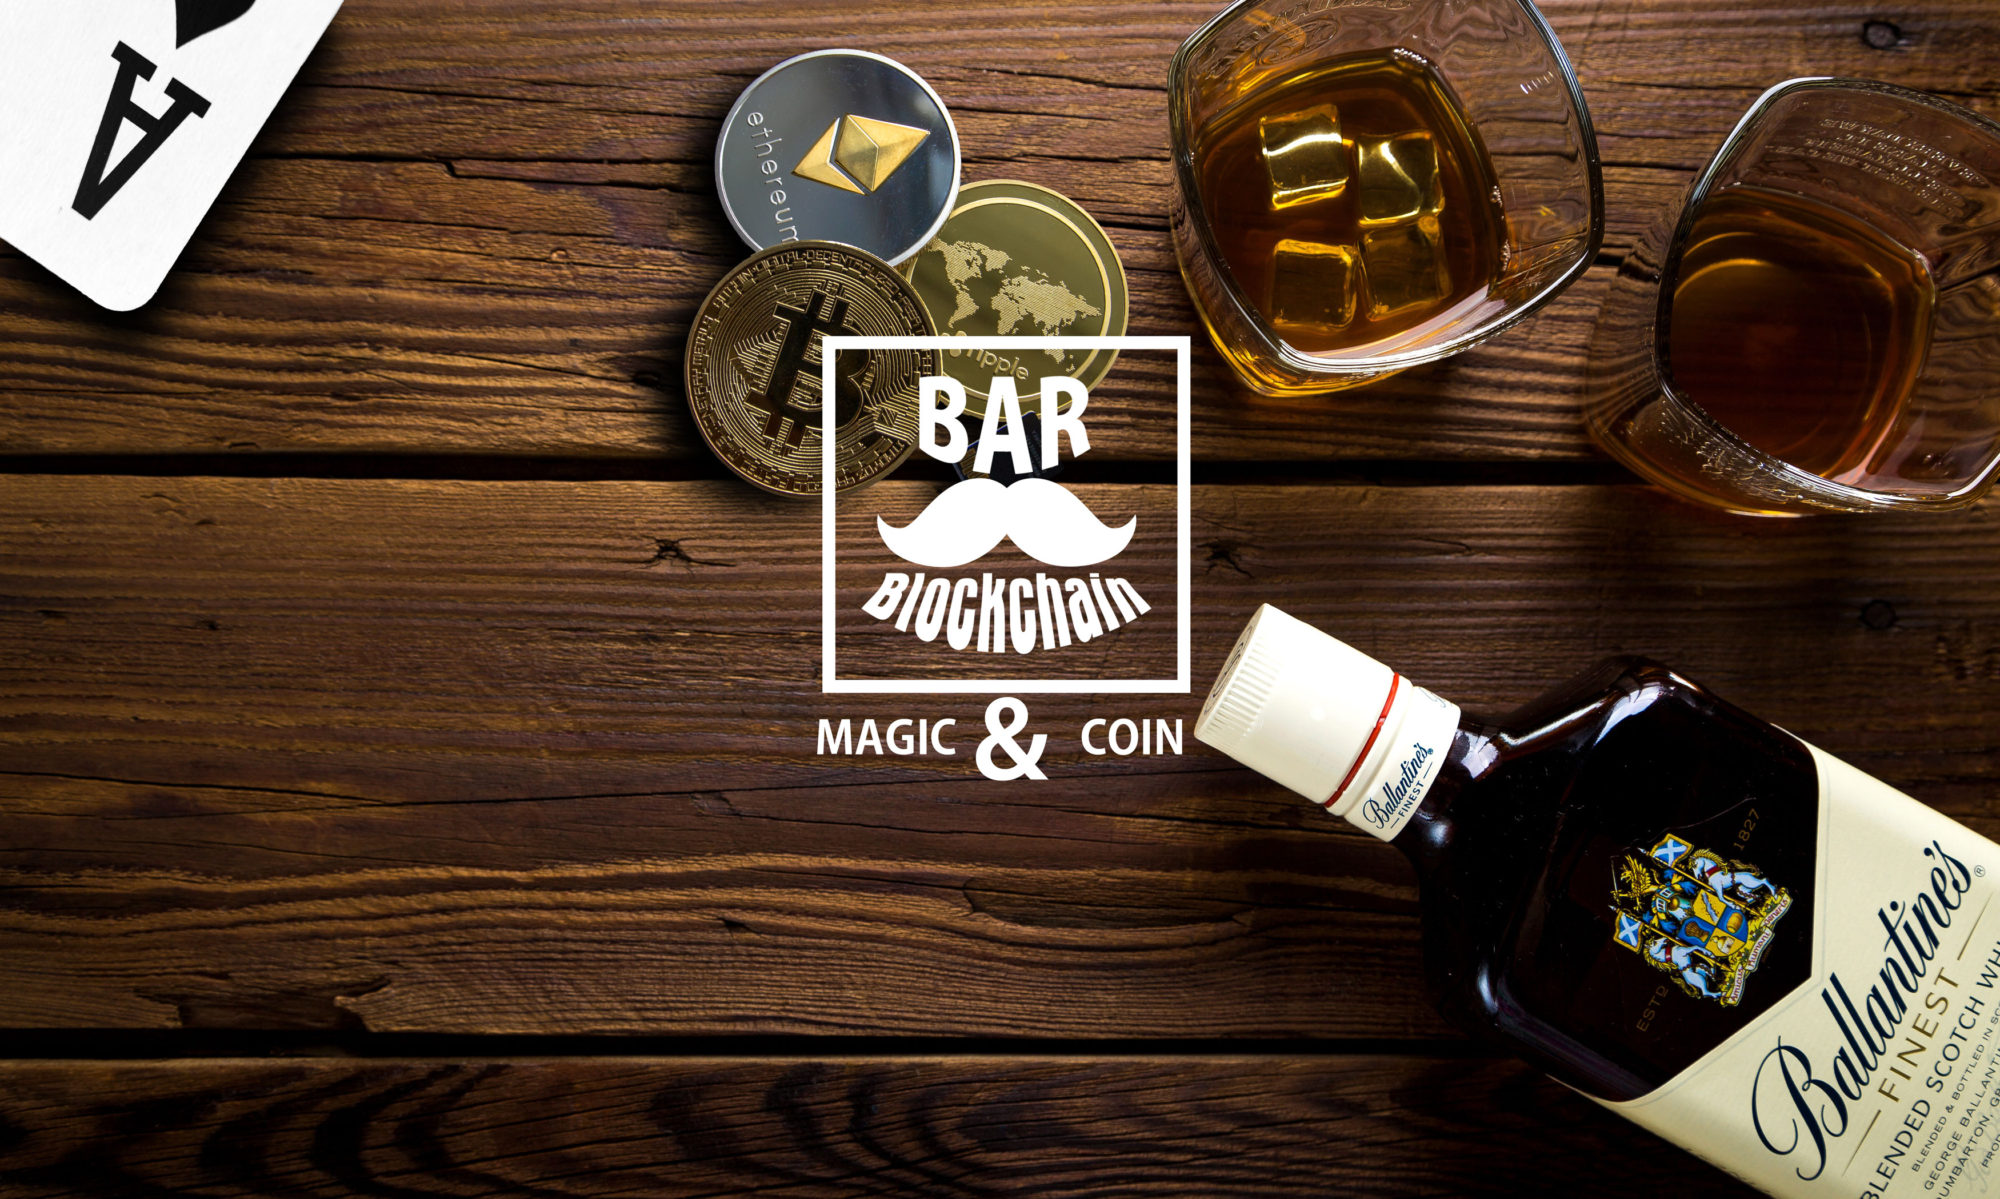 Coin&magic bar blockchain